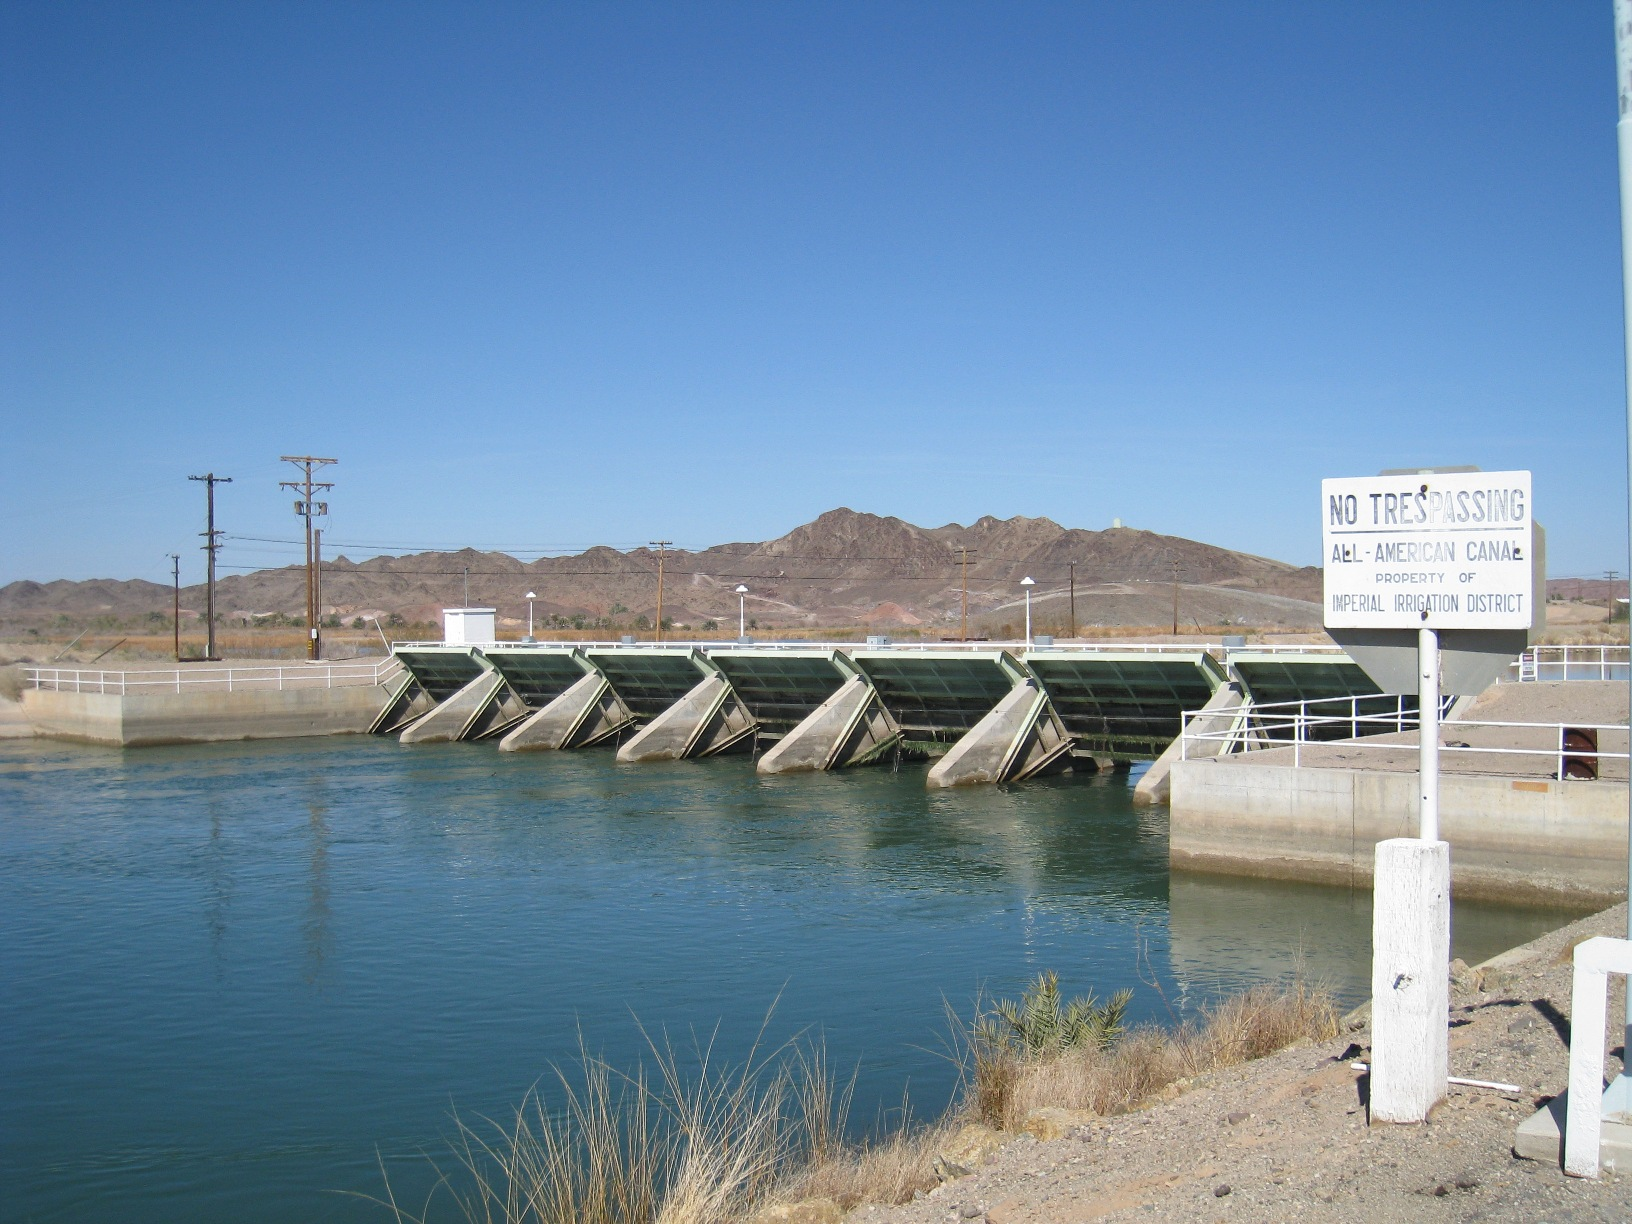 All American Canal : The all american canal maven s photo